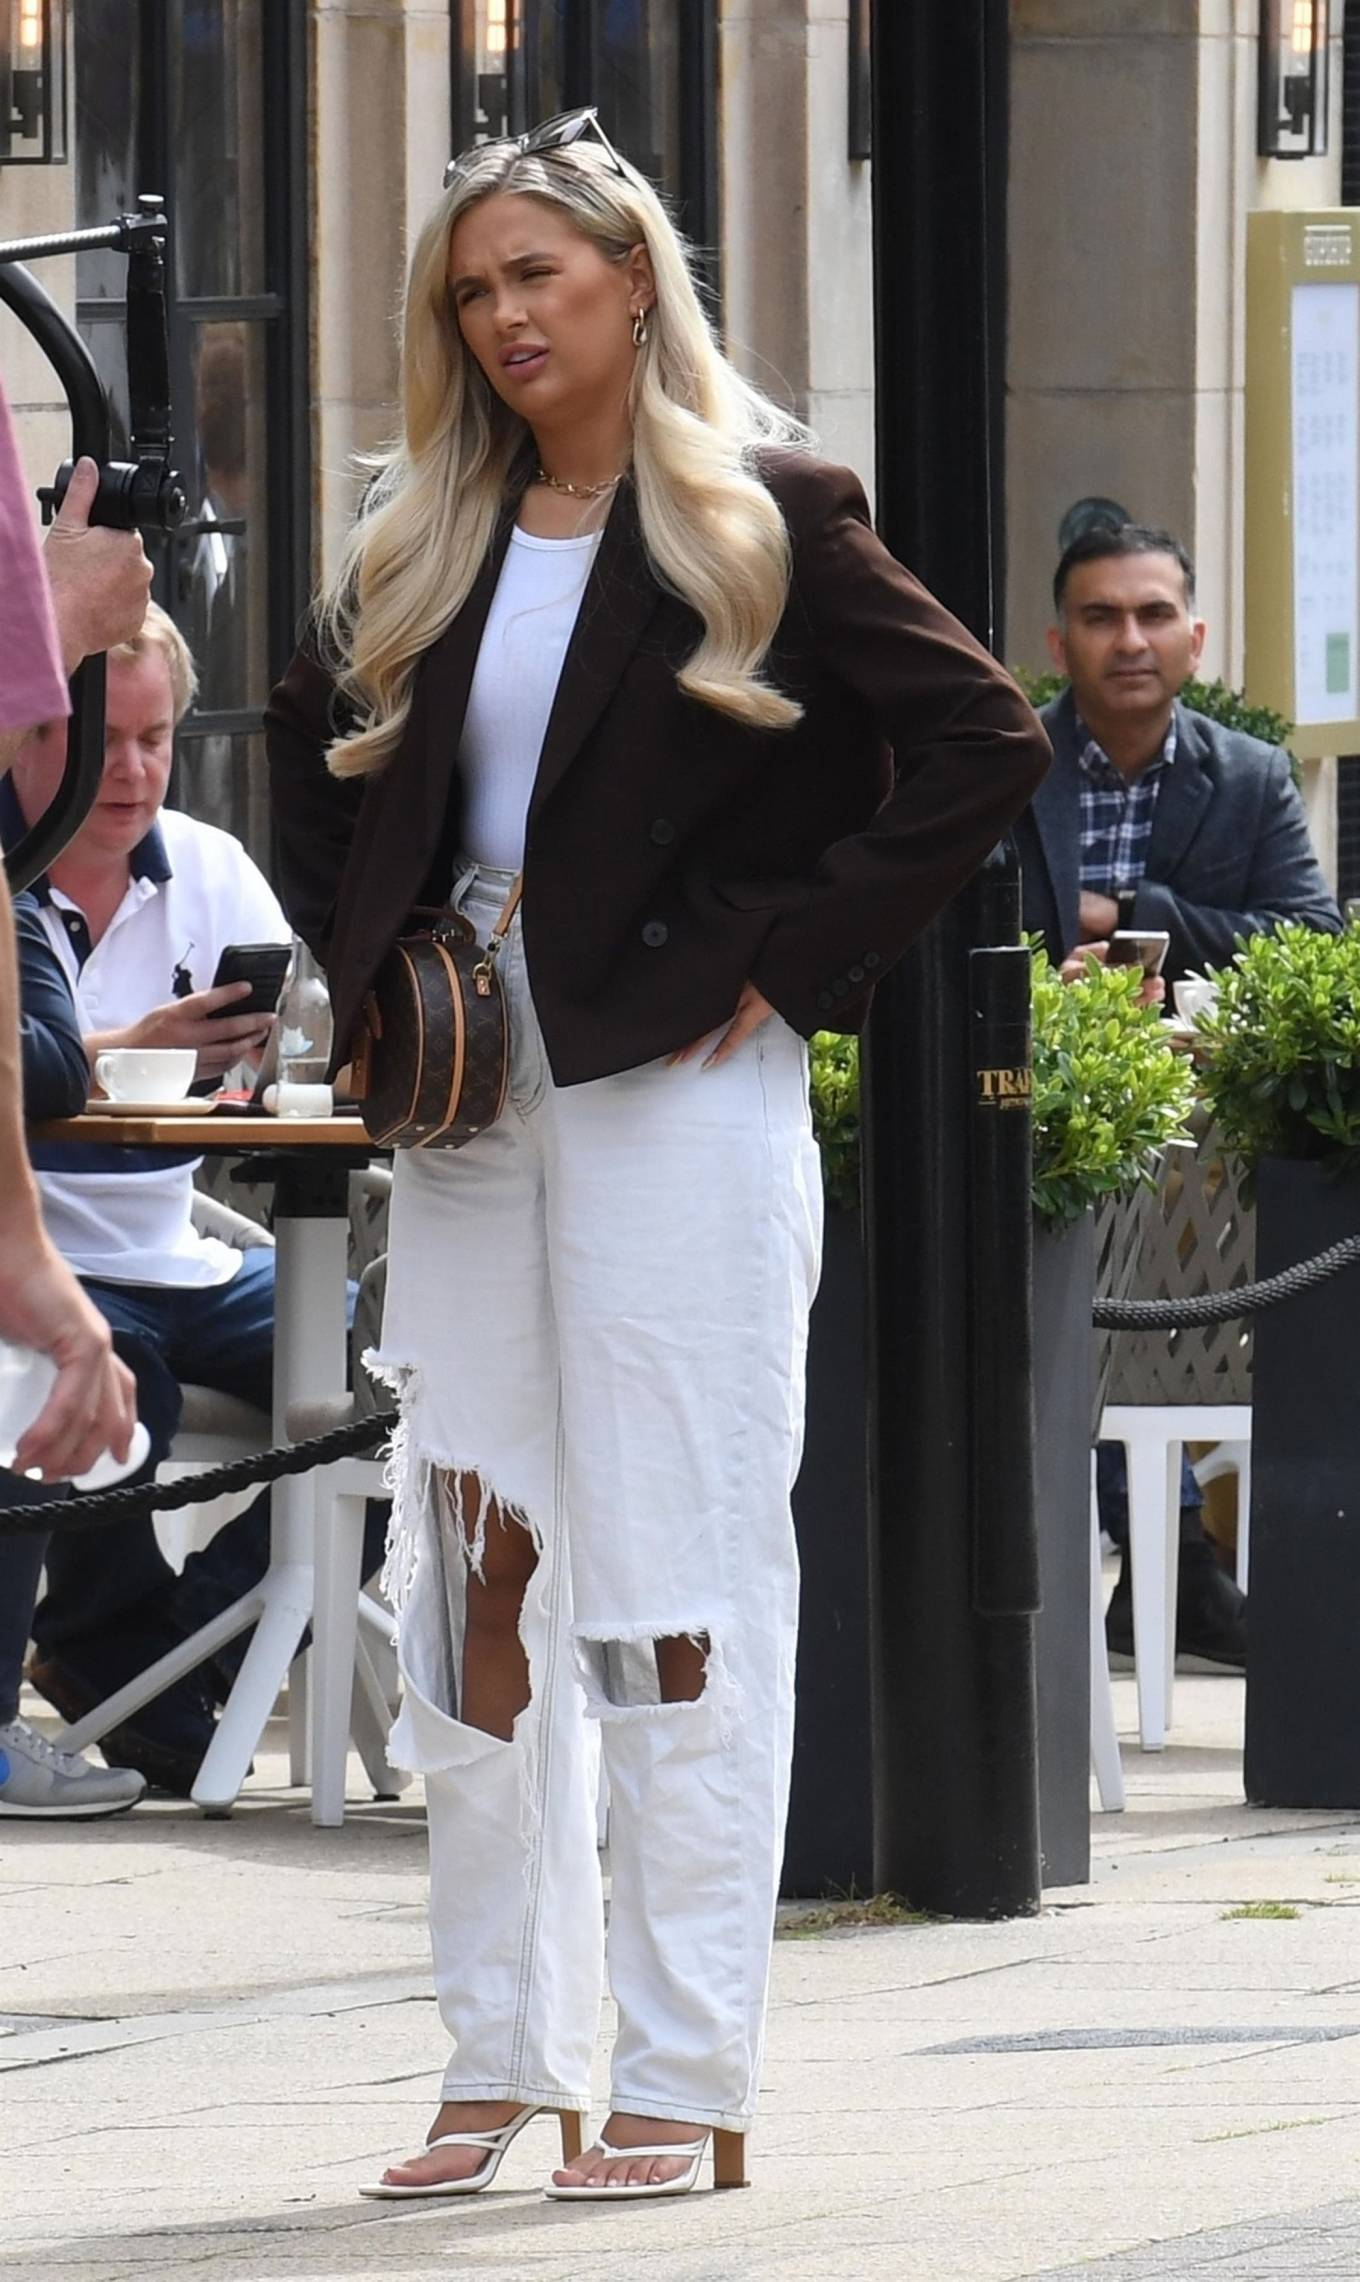 Molly-Mae Hague 2020 : Molly-Mae Hague and Tommy Fury – Seen while out in Cheshire -19